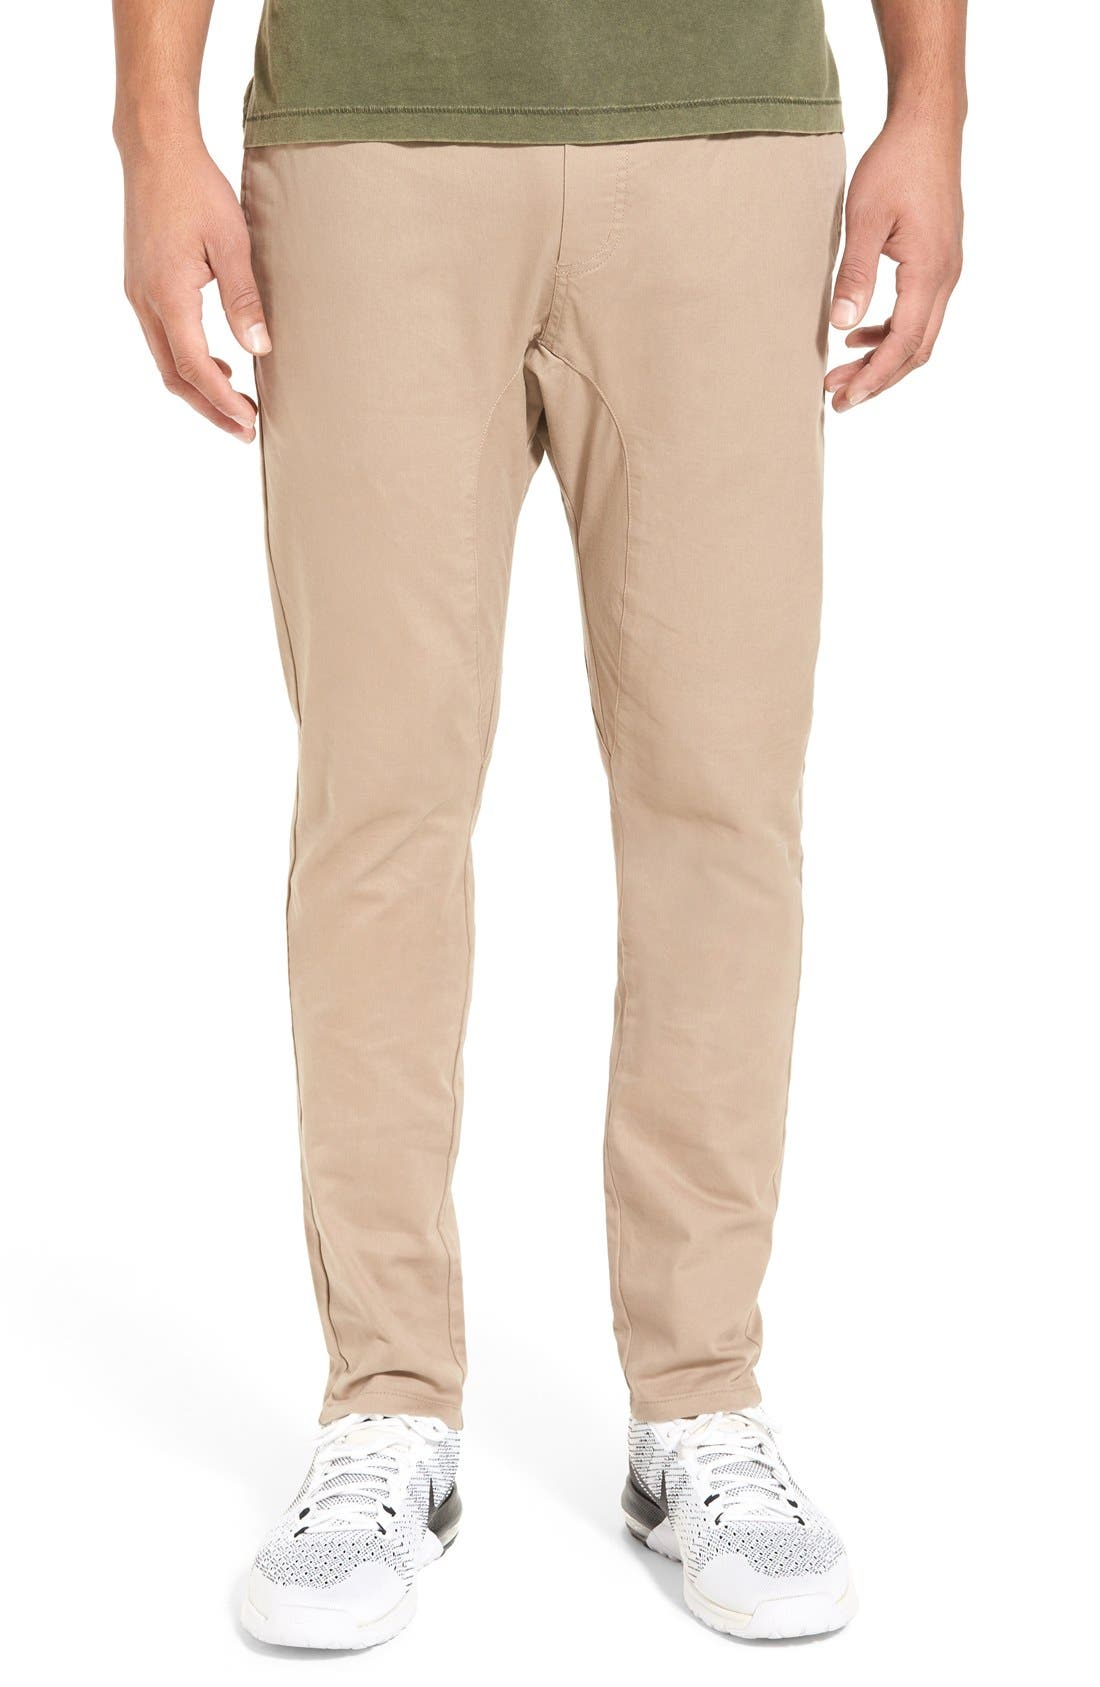 ZANEROBE 'Salerno' Chino Jogger Pants